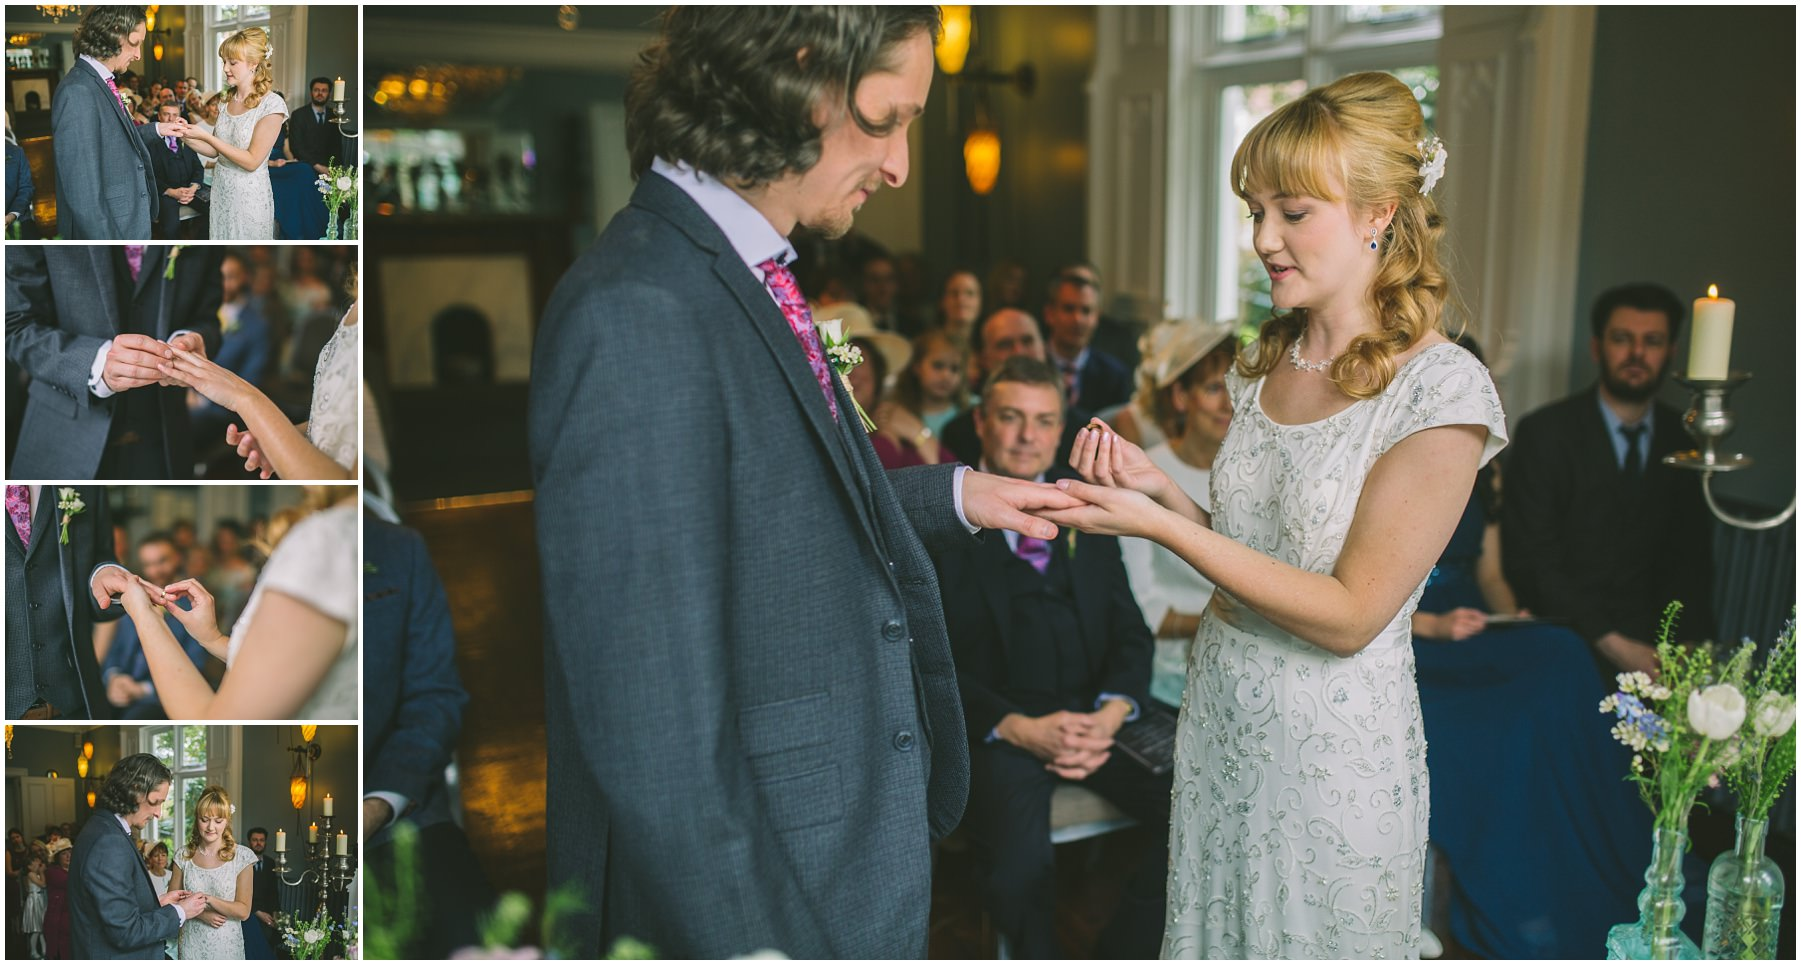 The Exchange of Wedding Rings during a Didsbury House Wedding